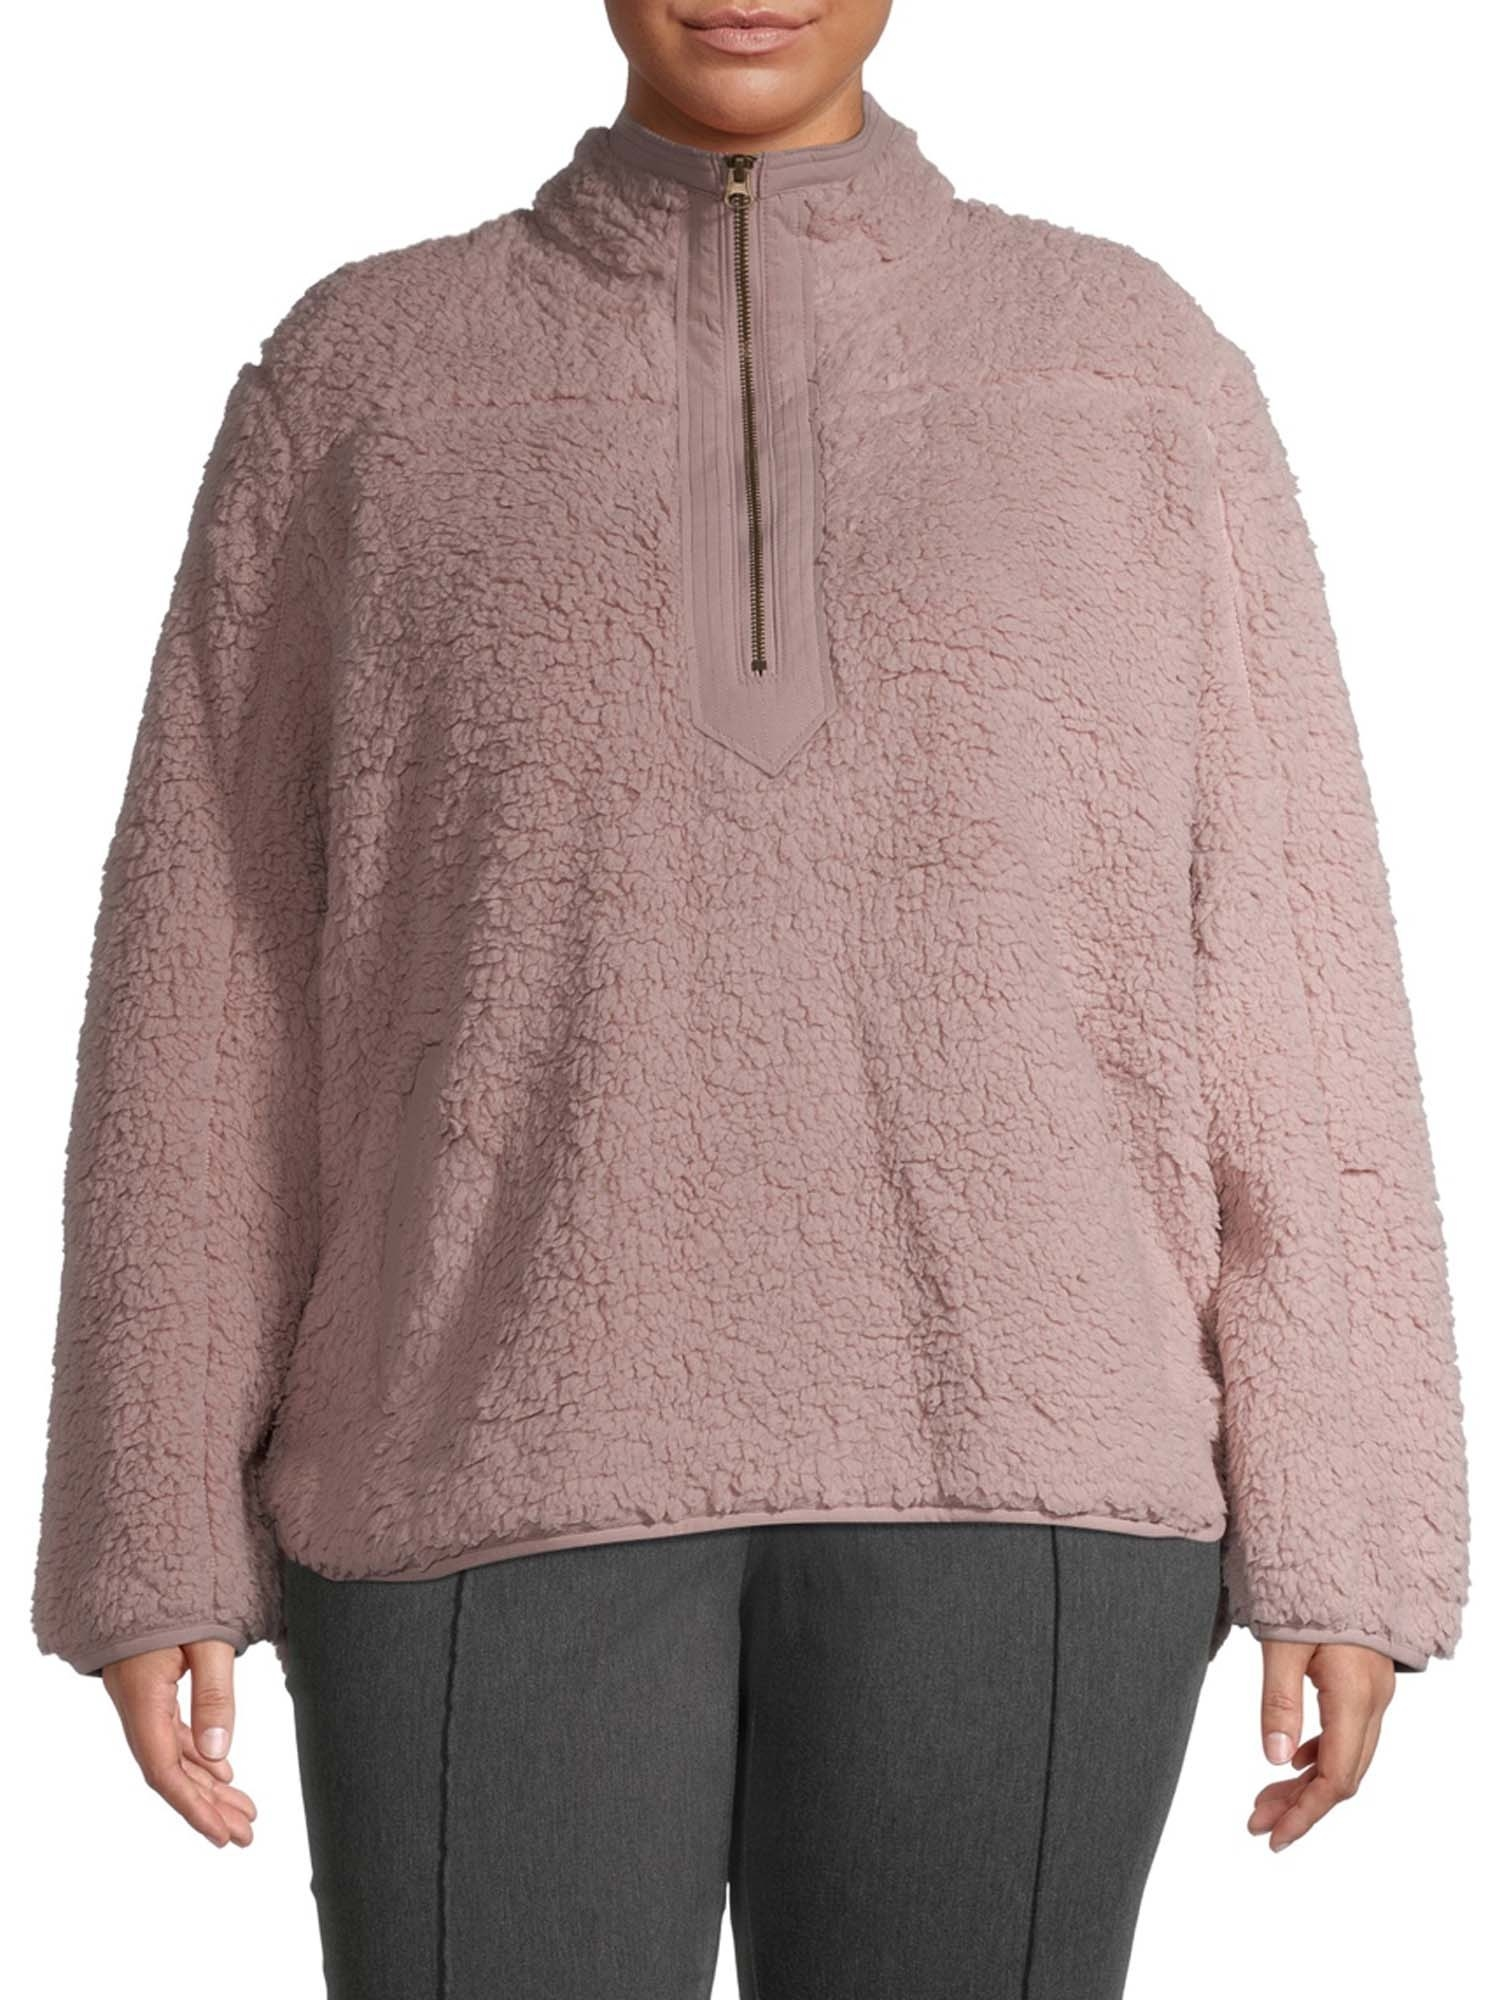 person wearing a pink faux sherpa pullover